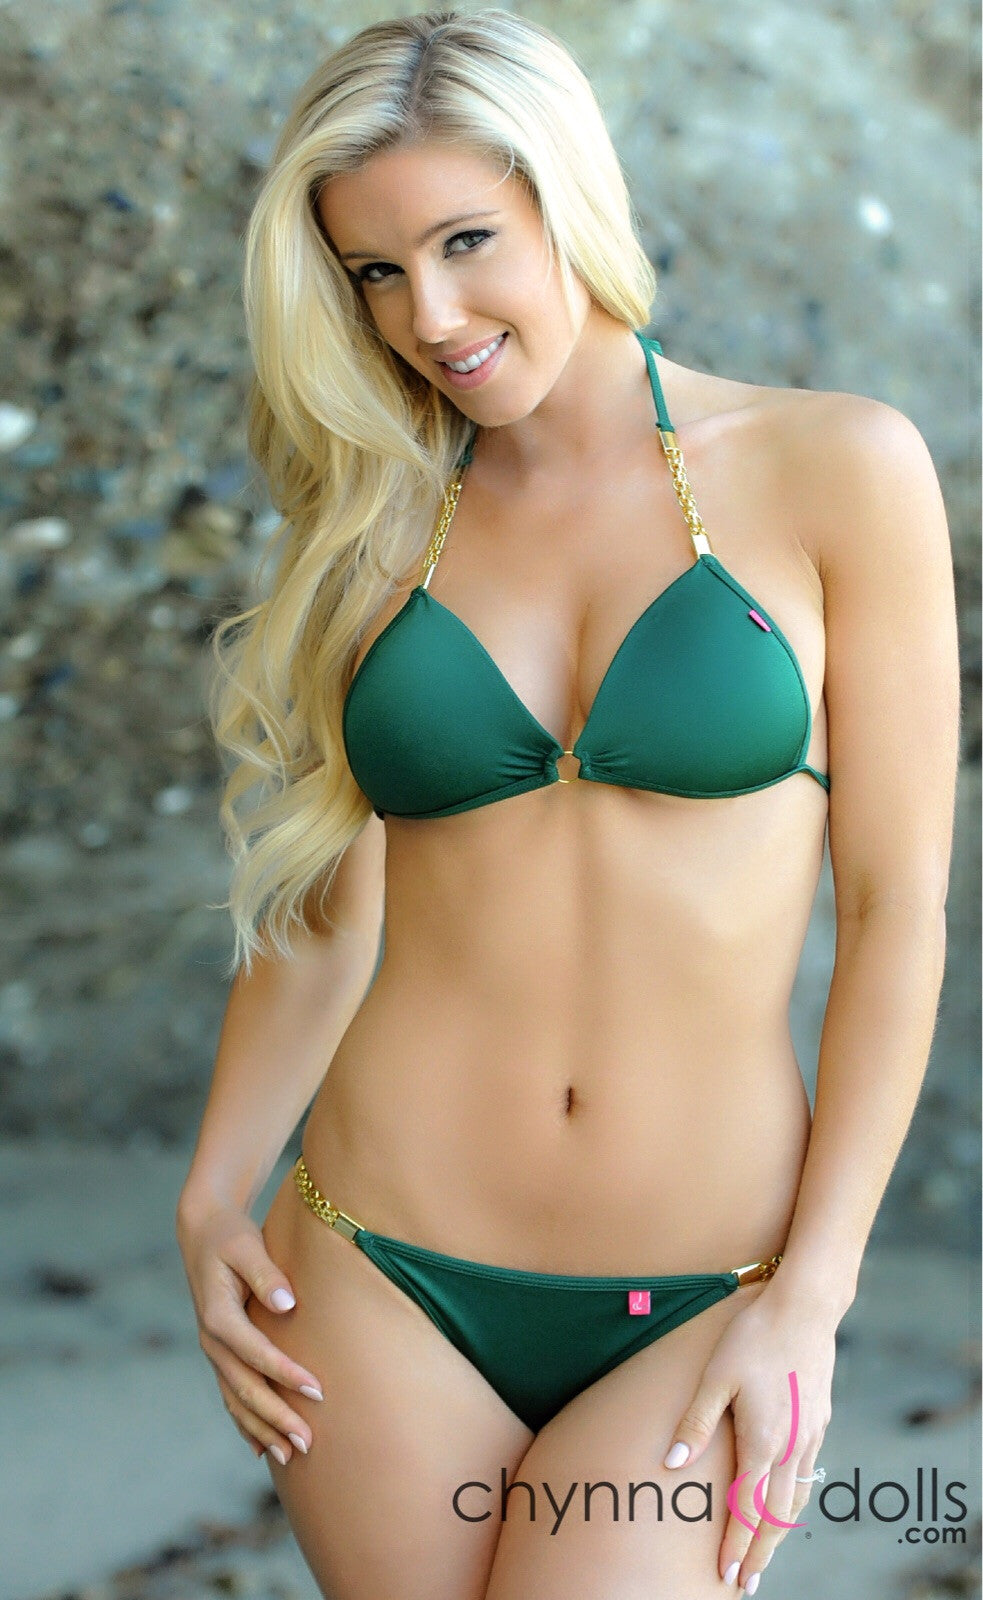 Persia: Padded Push Up Swimsuit w/ Palma Gold Chain in Hunter Green - Chynna Dolls Swimwear